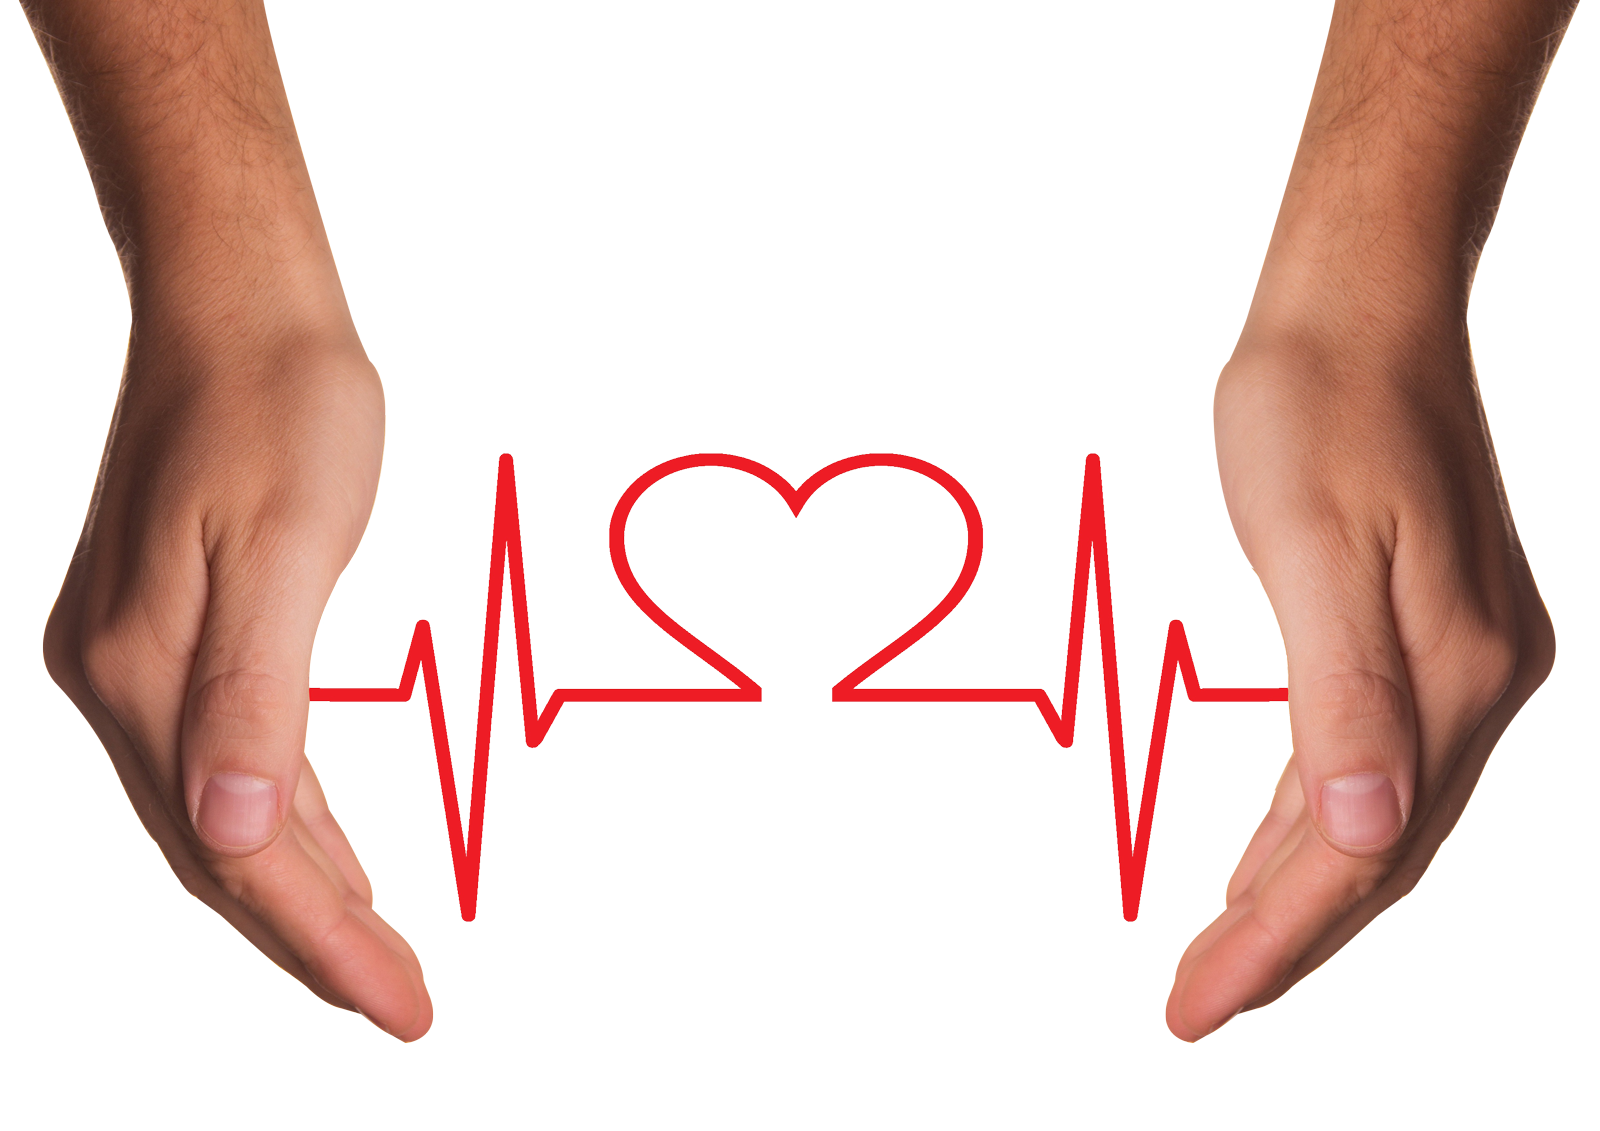 Hands holding png. Red heart with ecg